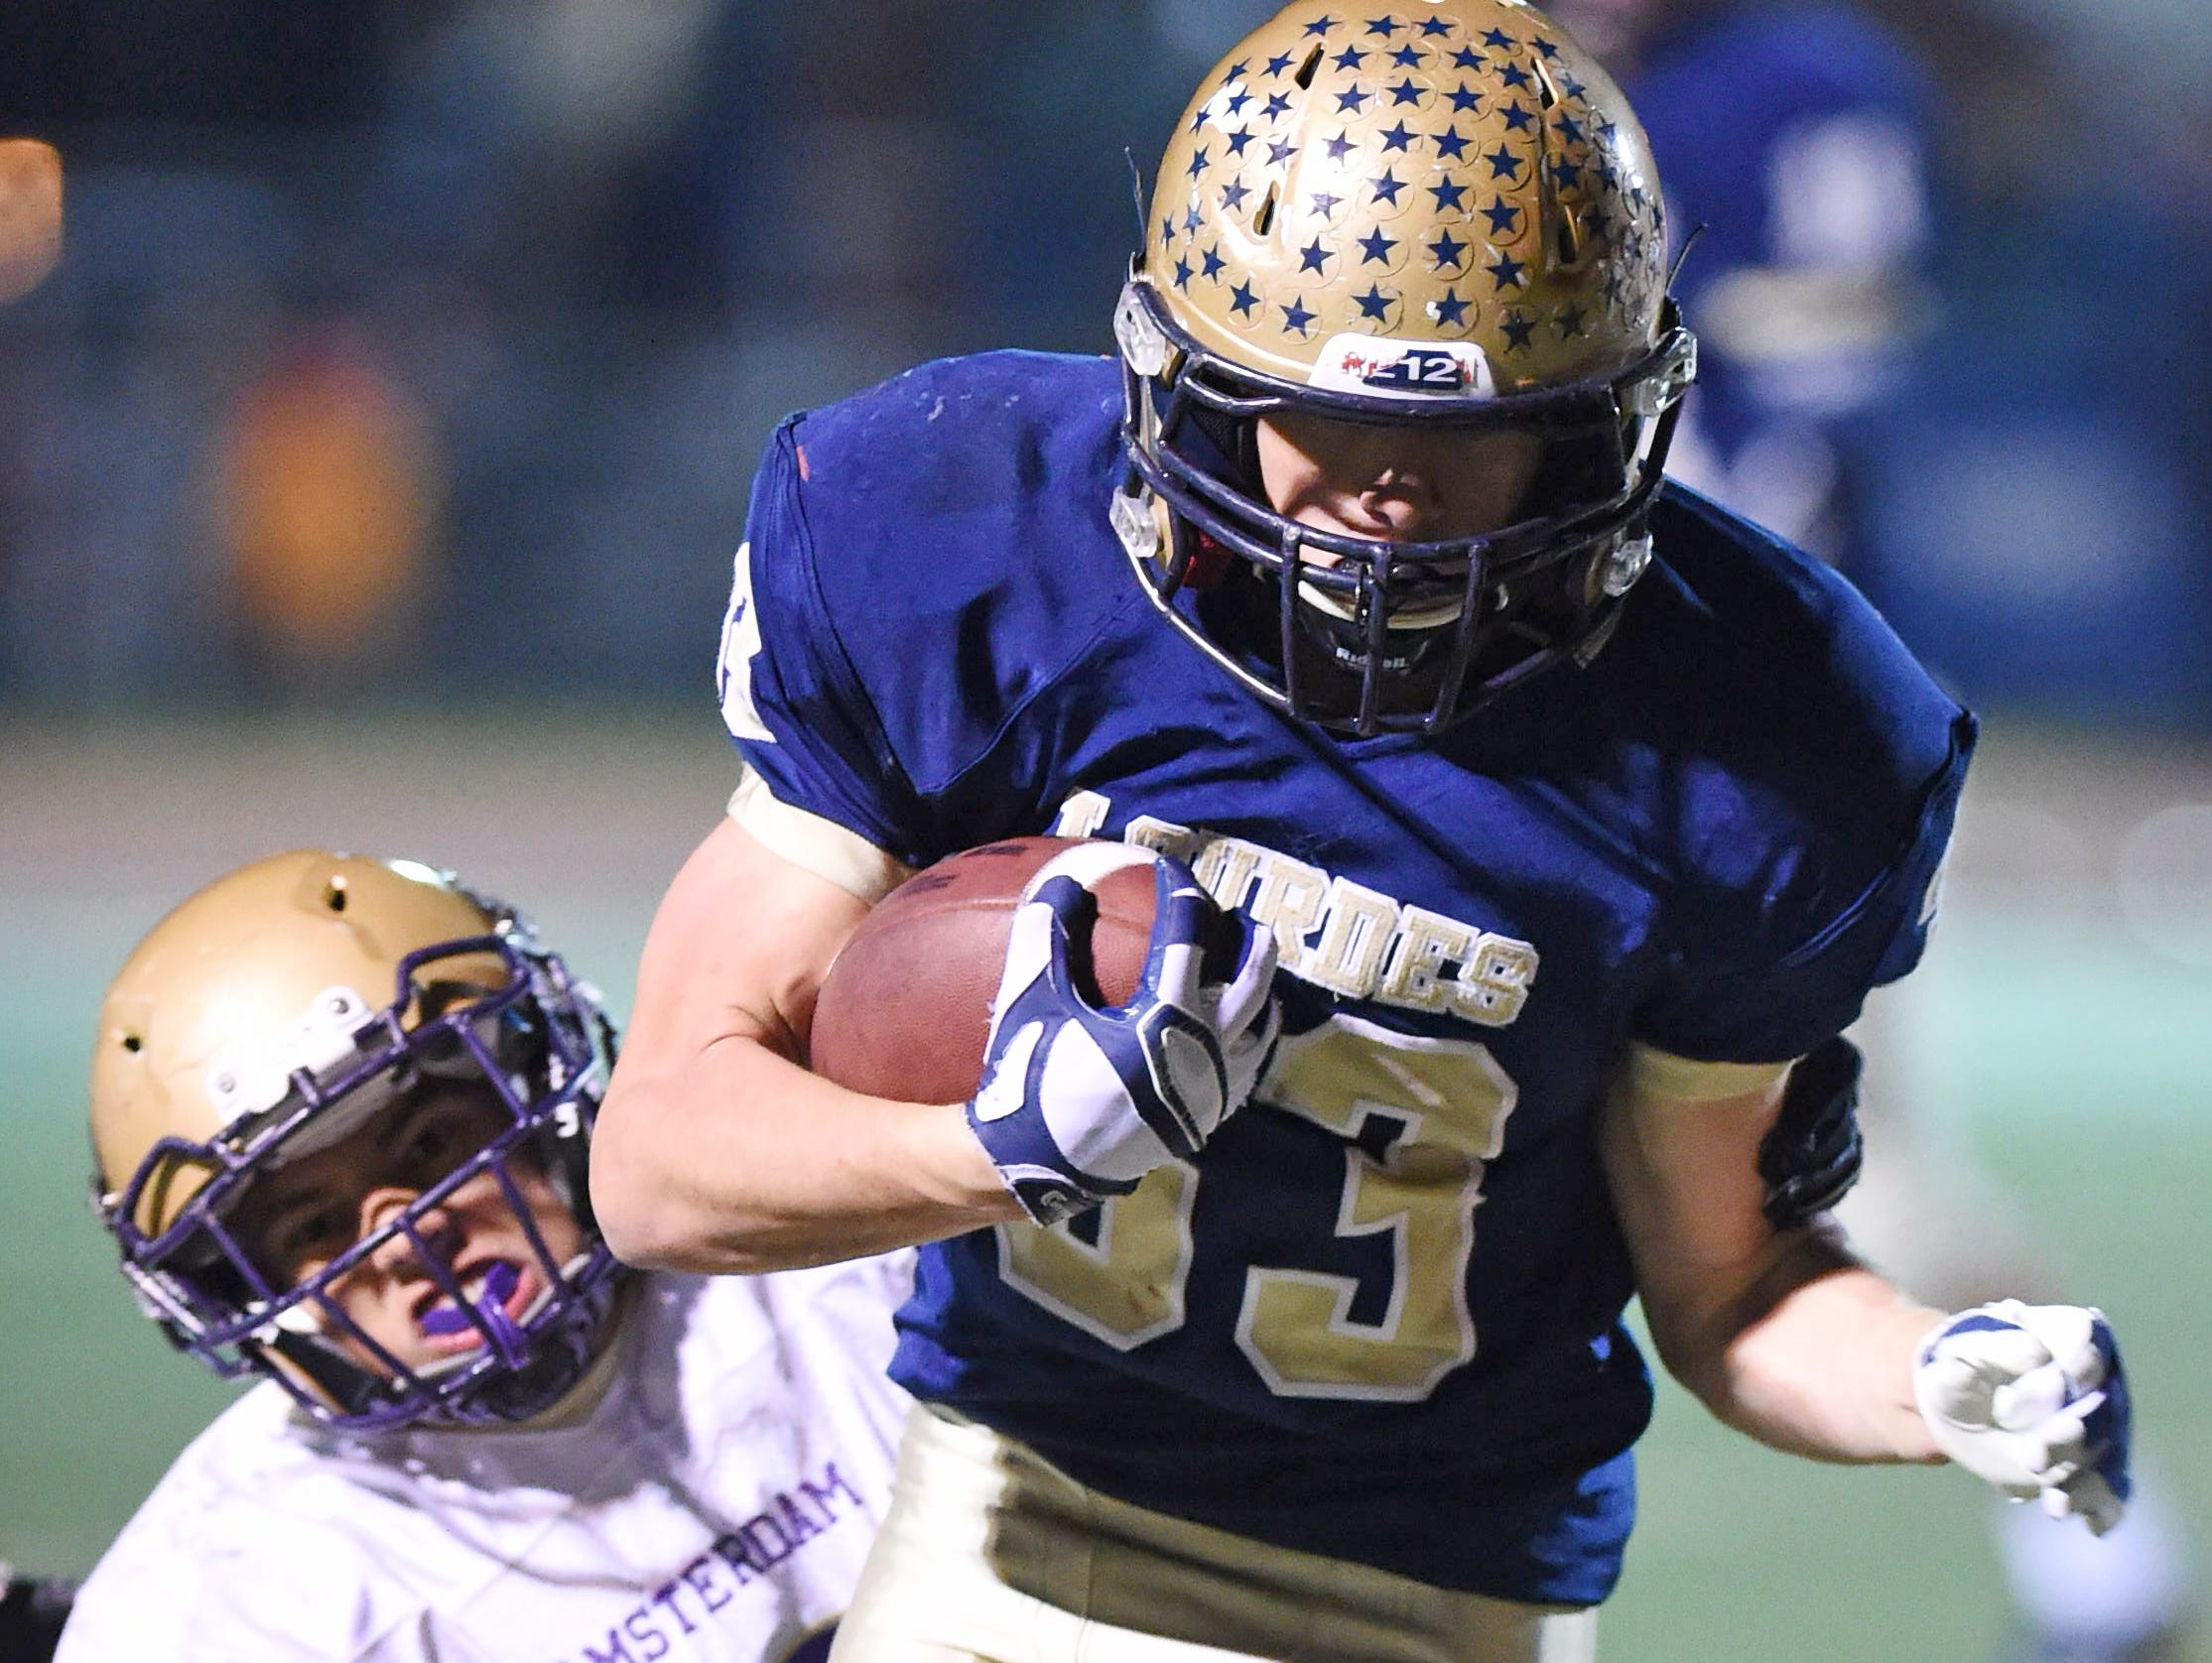 Lourdes' Joe Scaglione carries the ball as Amsterdam's Adel Rosario grabs a hold of him during the Class A semi final at Dietz Stadium.